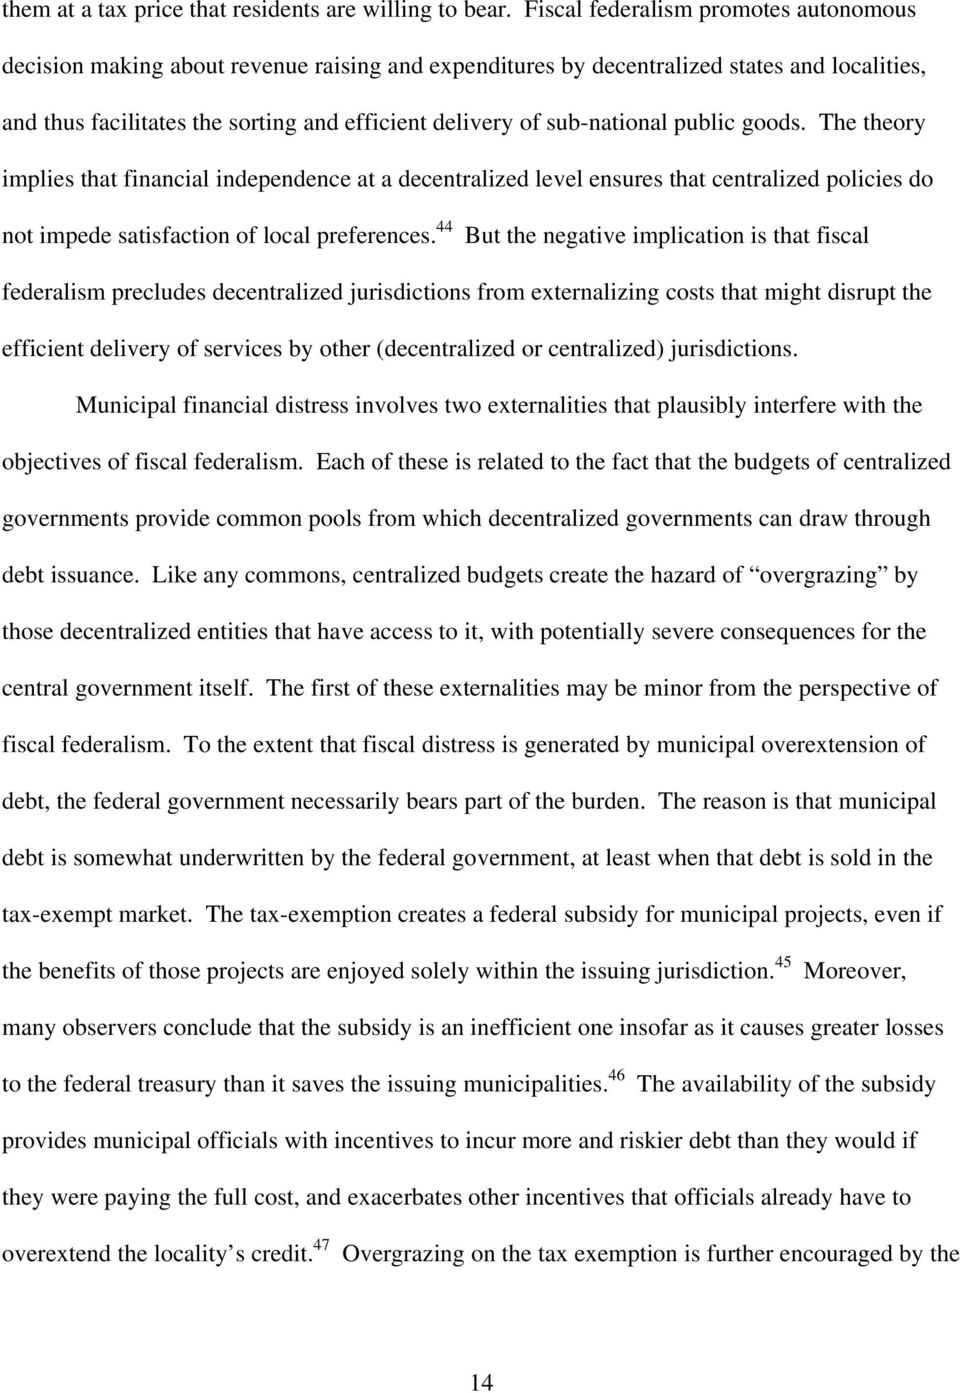 sub-national public goods. The theory implies that financial independence at a decentralized level ensures that centralized policies do not impede satisfaction of local preferences.